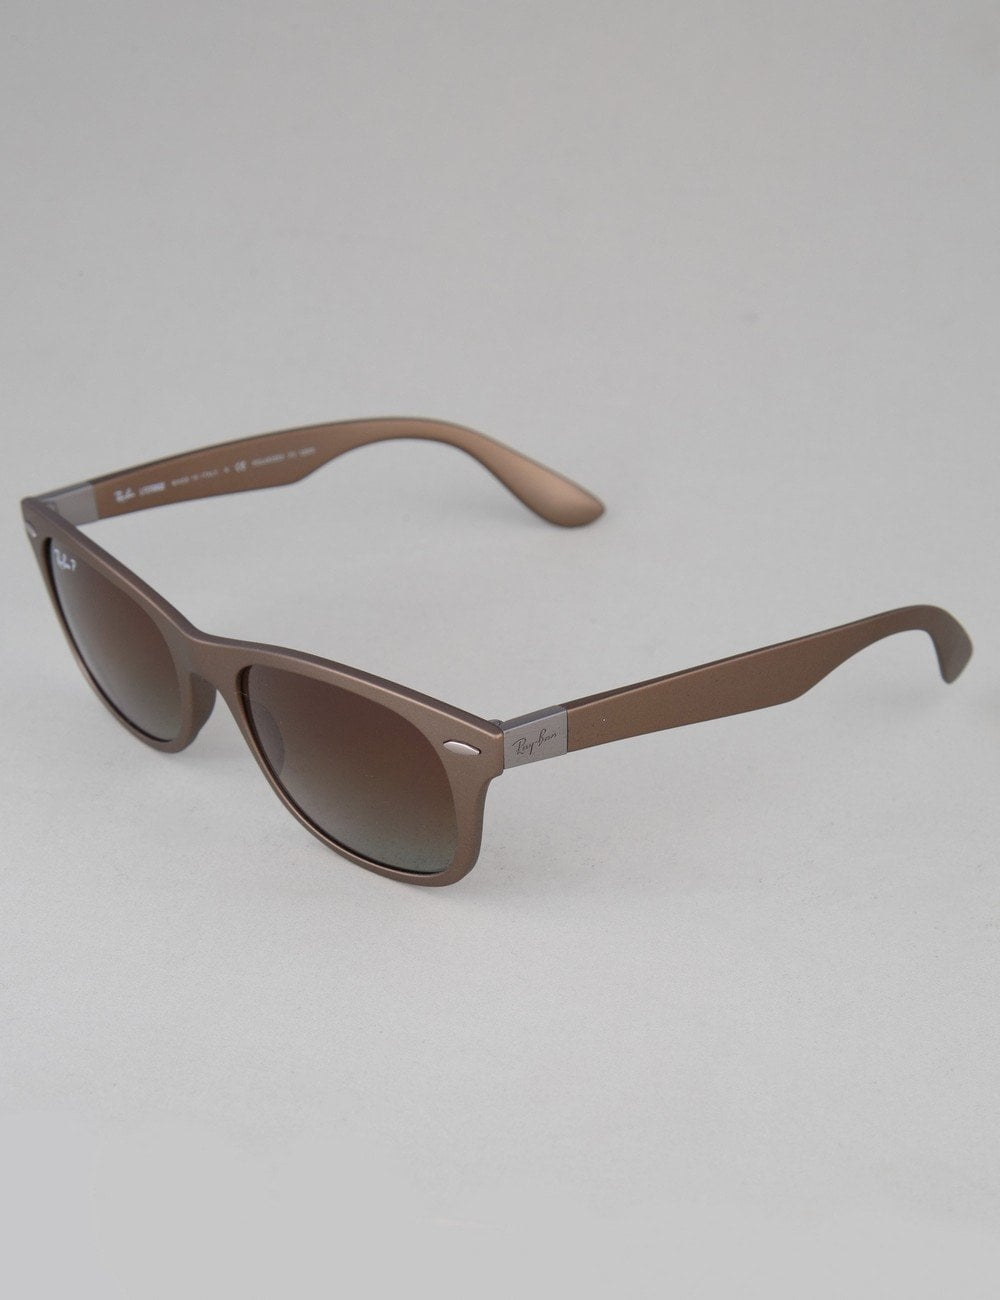 e1496bb2df ... top quality ray ban tech liteforce sunglasses matte brown polarized  brown accessories from fat buddha store